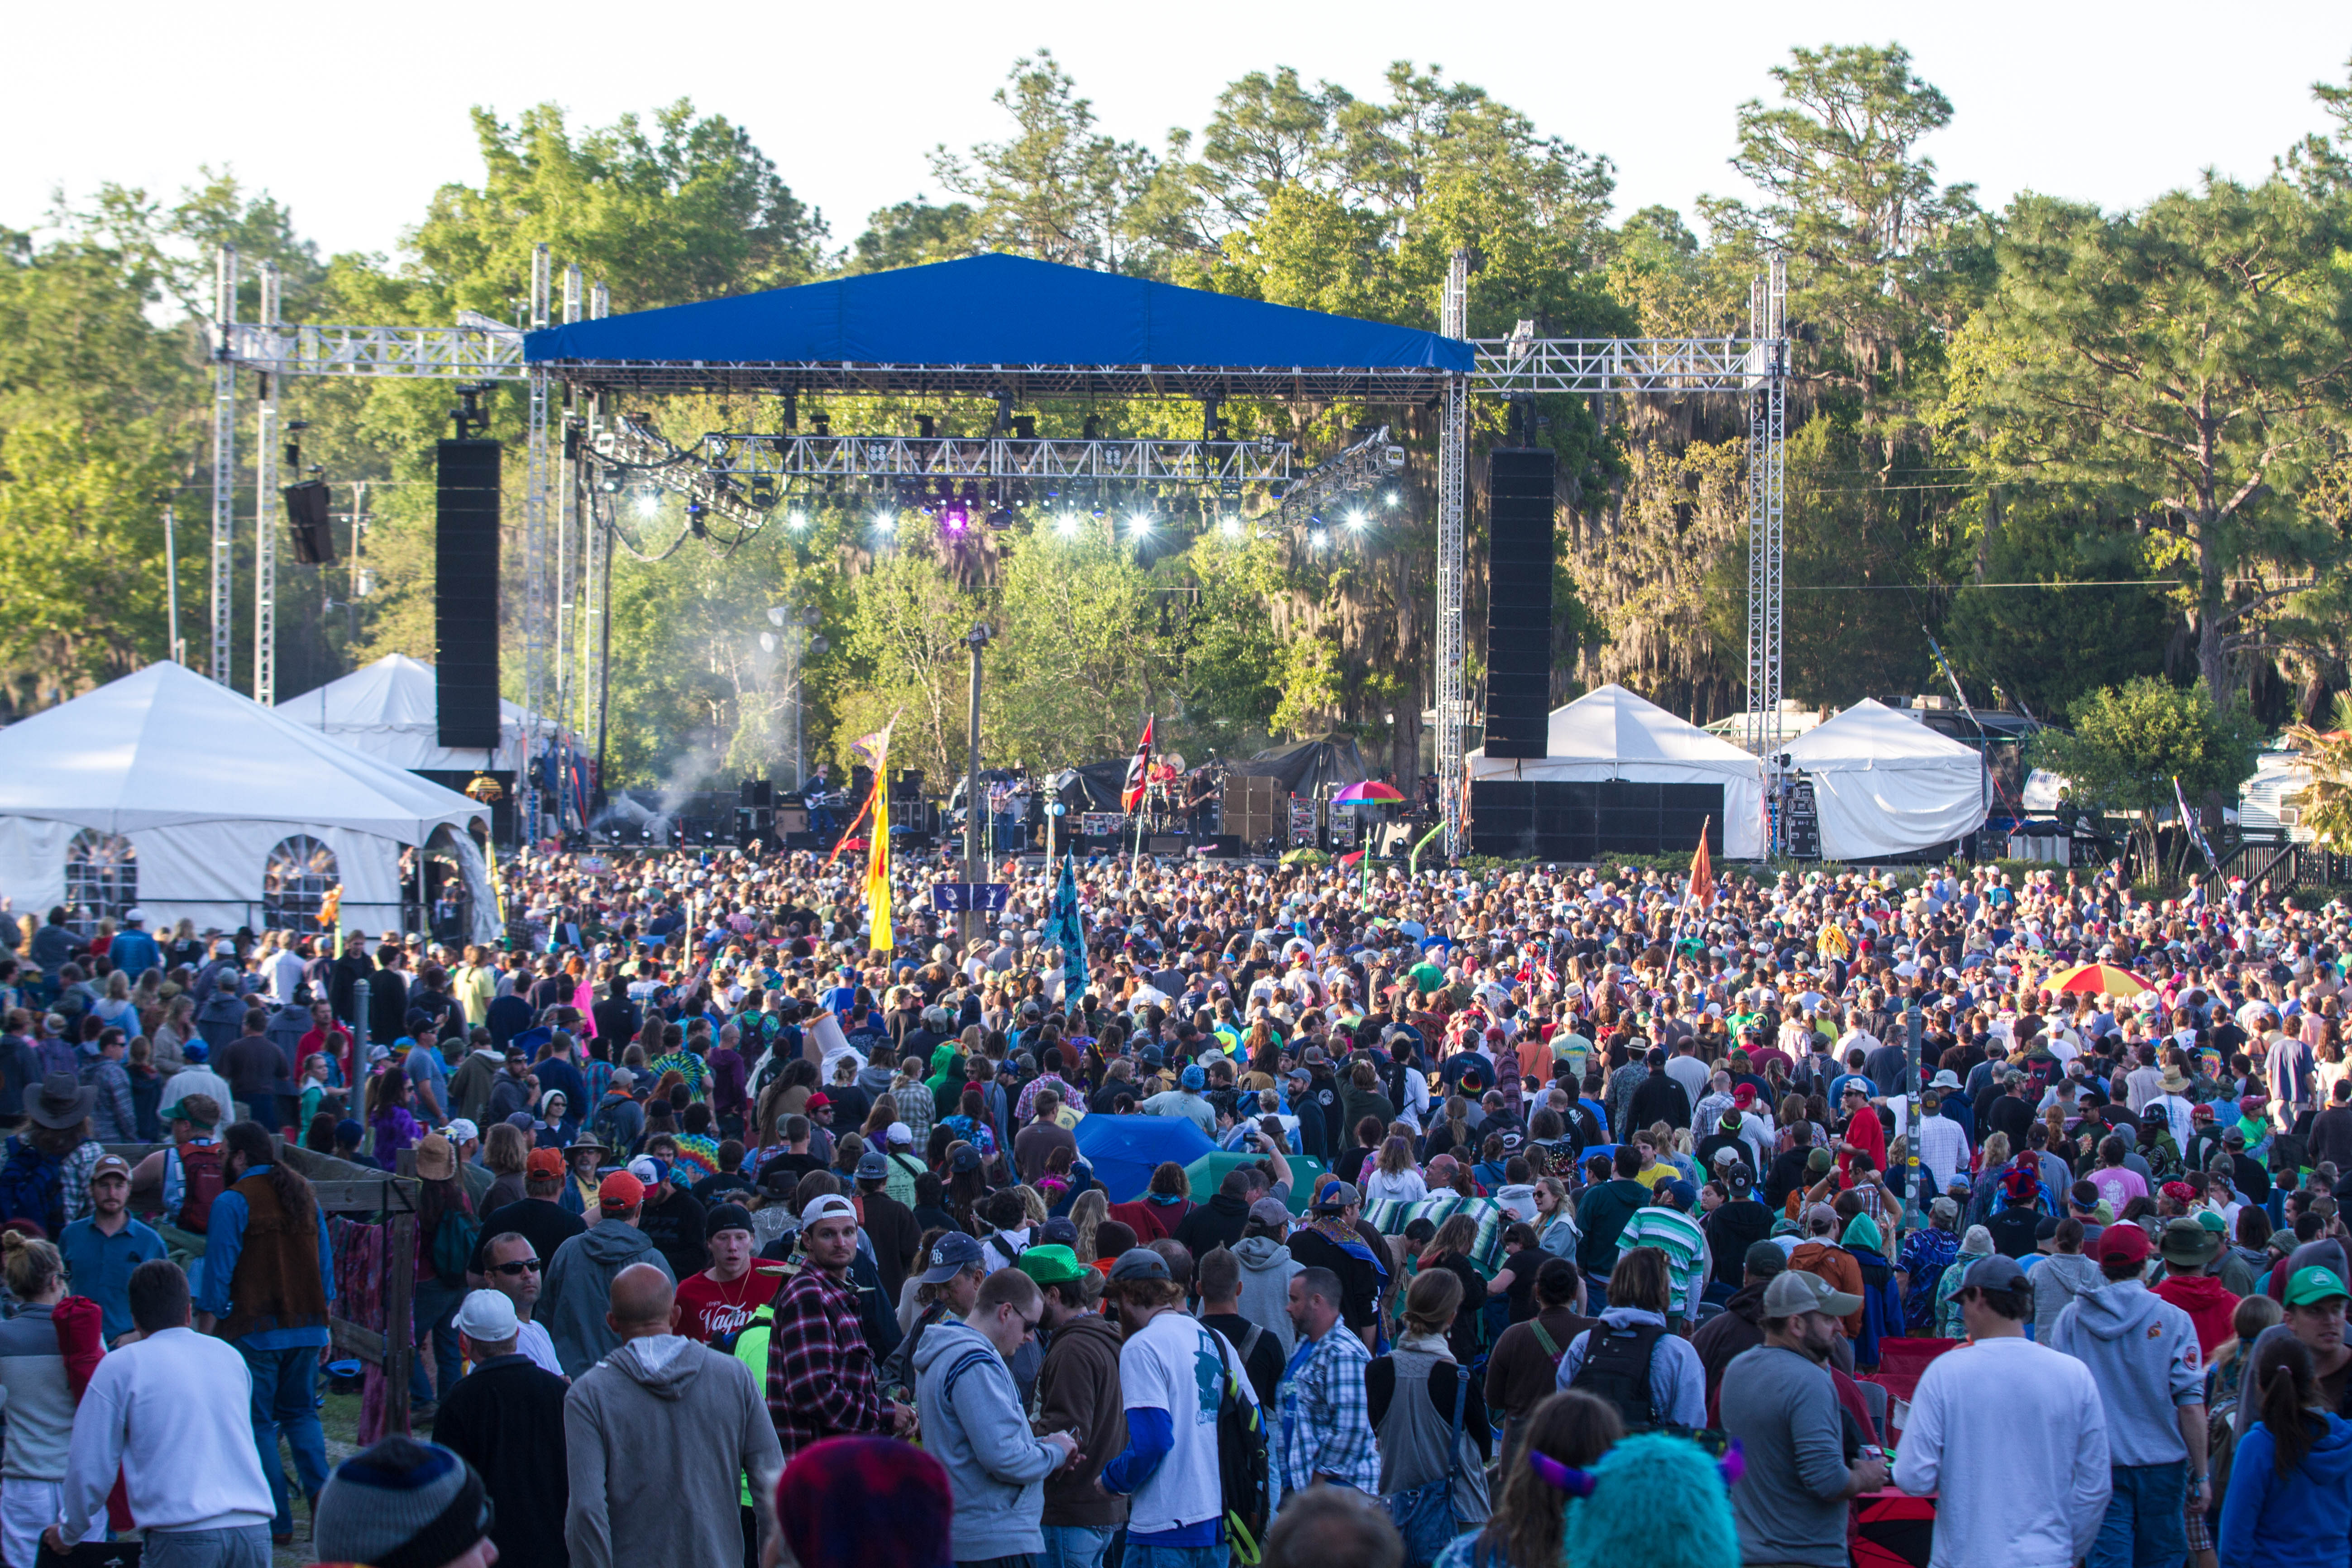 Thousands of fans gather for the Widespread Panic gig during the last day of Wanee 2013 April 20. Photo George Peavey.